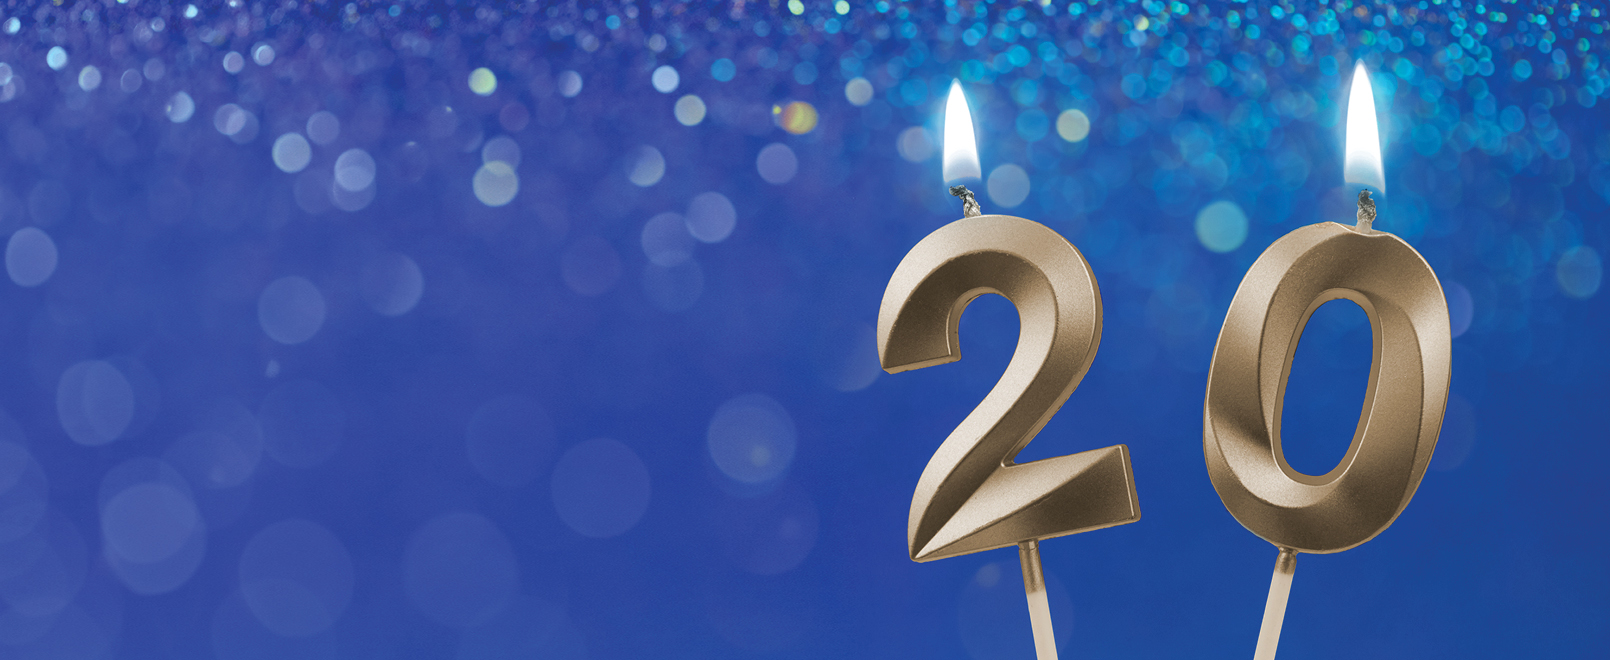 We're Celebrating our 20th Year Anniversary with an Exclusive Promotion!